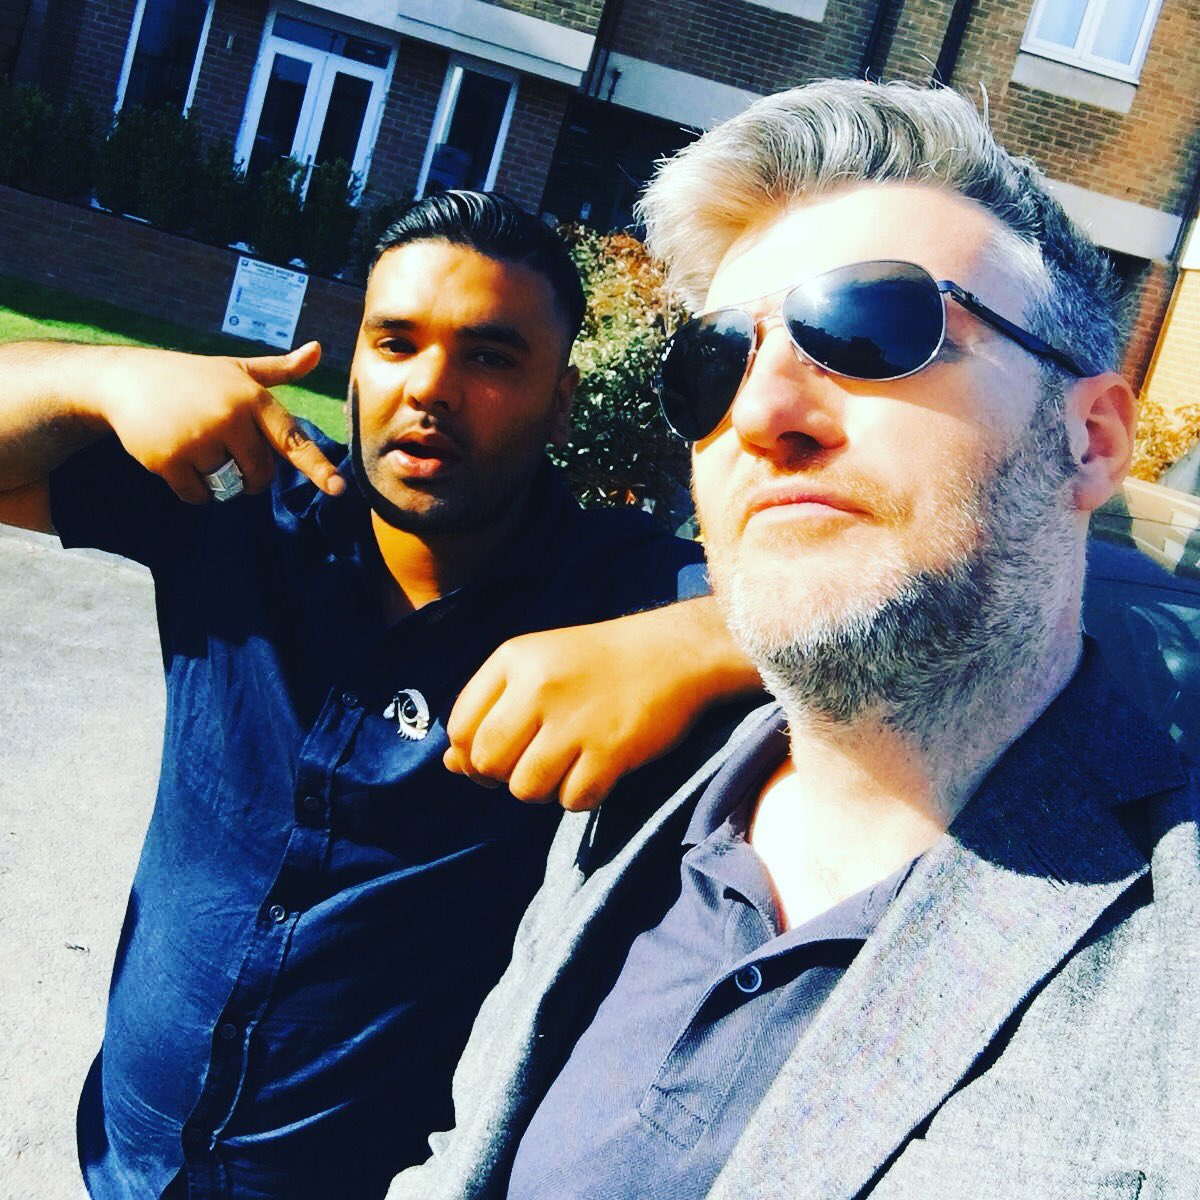 It was a pleasure to meet you sir 👊🏽@charltonbrooker #genius #blackmirror #ifyouknowyouknow